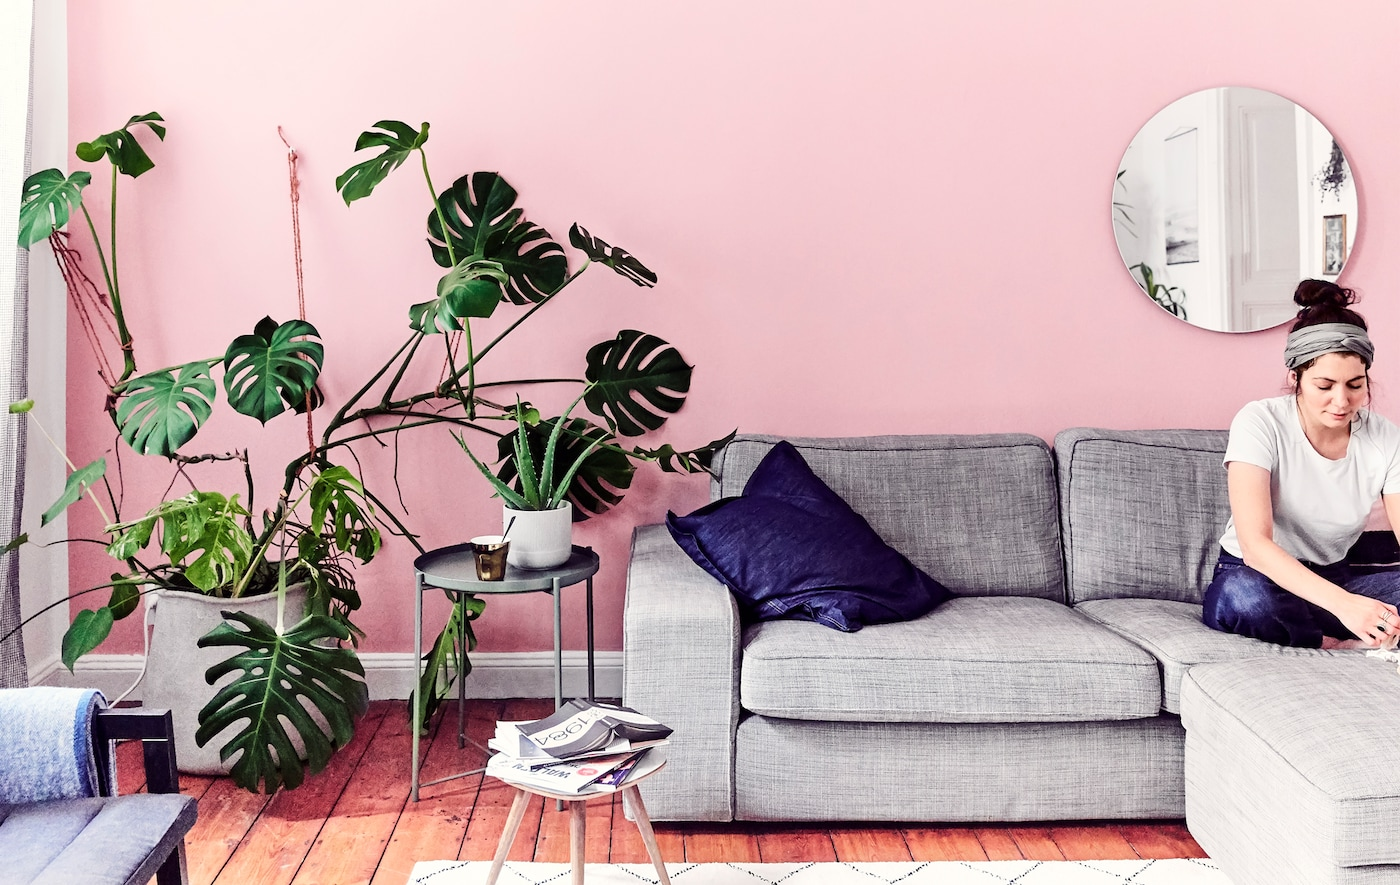 Julia sitting on a grey sofa in a living room with a pink wall and large monstera plant.